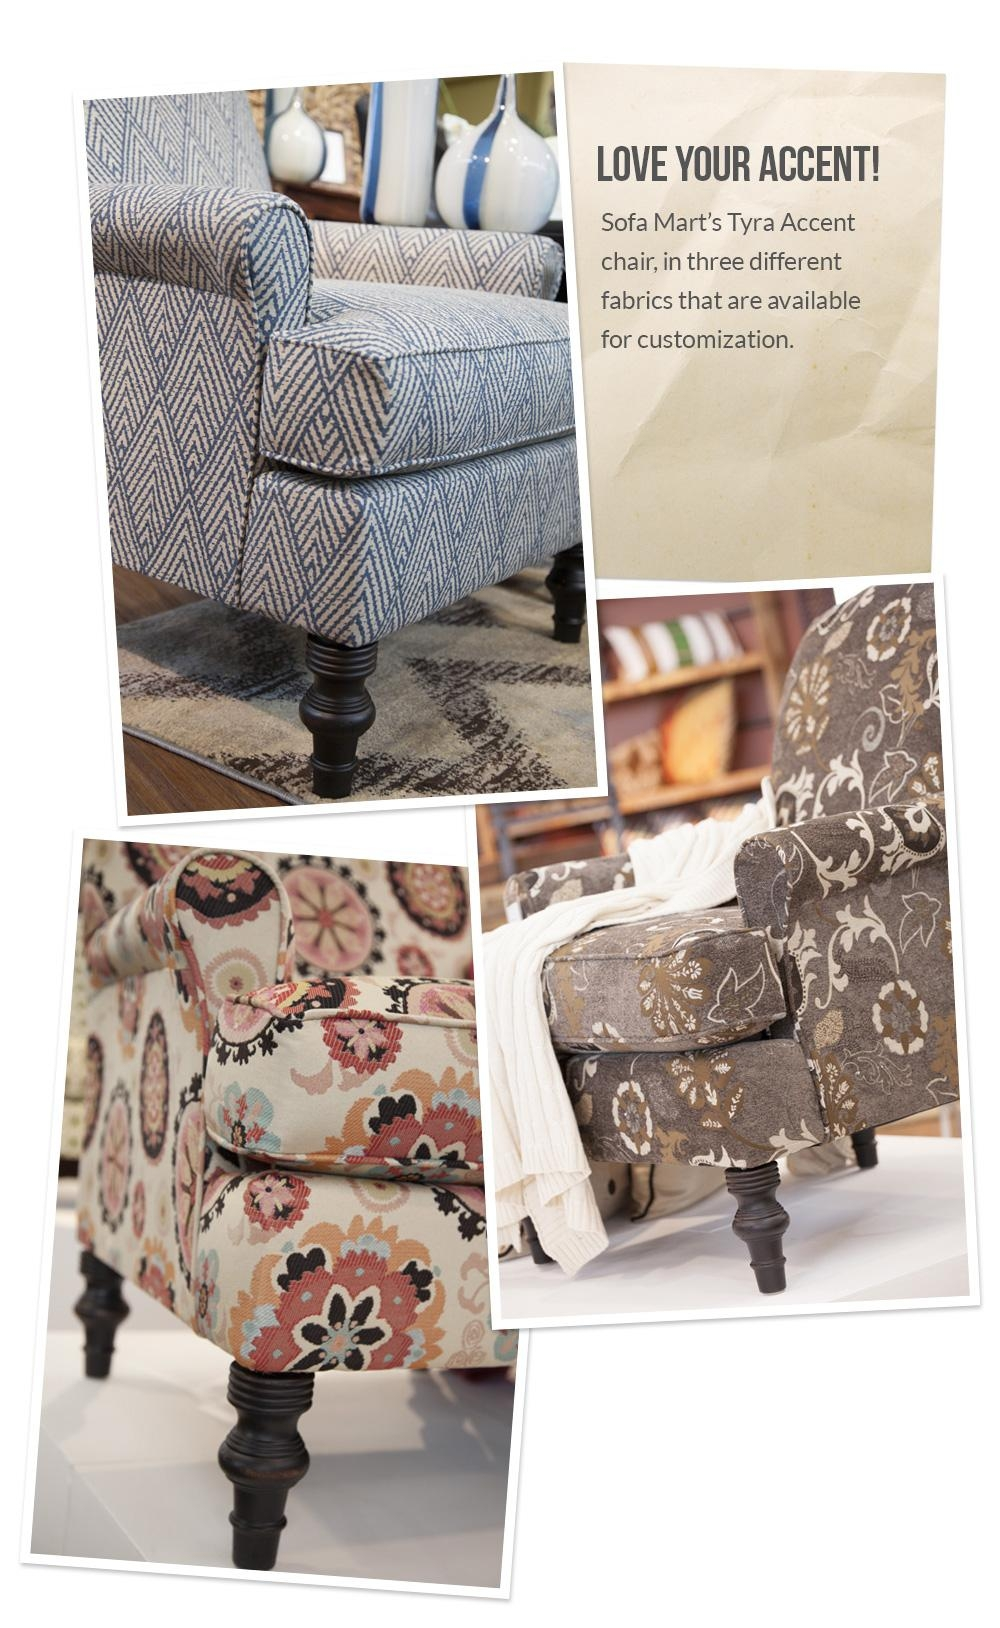 Love Your Accent! Custom Accent Chair Fabrics – Front Door Throughout Sofa Mart Chairs (Image 11 of 20)